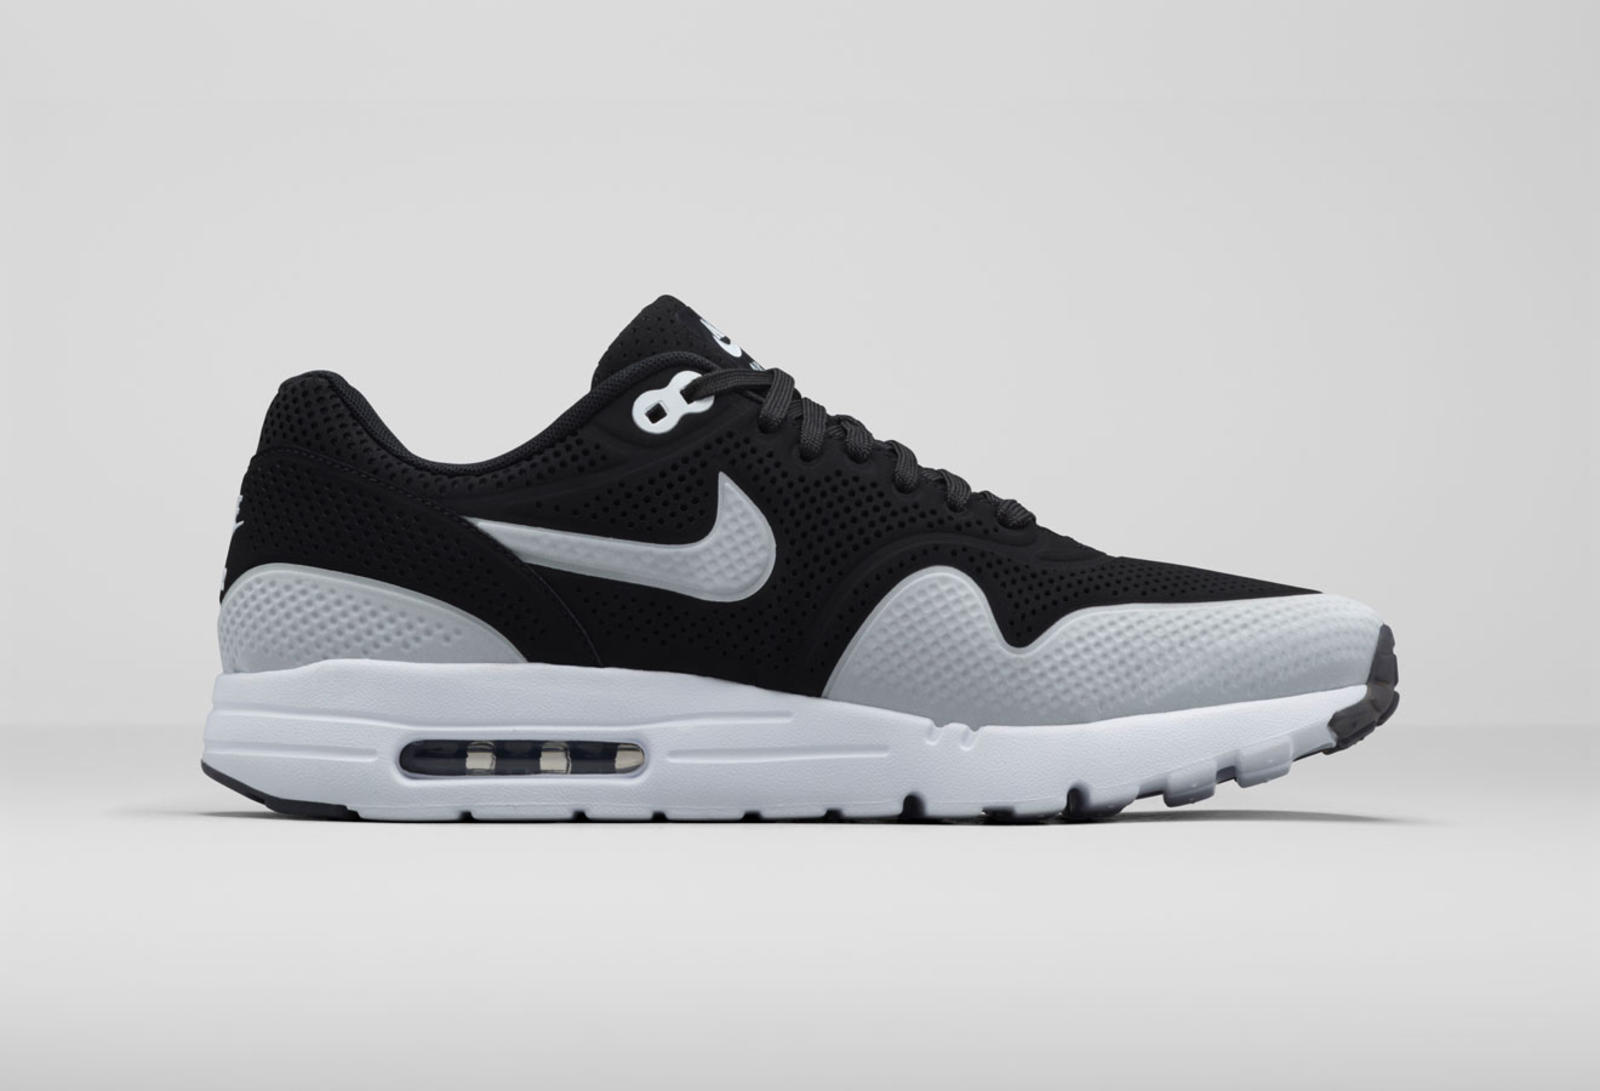 Nike Air Max Men's 2015 Blue And White Surfing News, Surfing